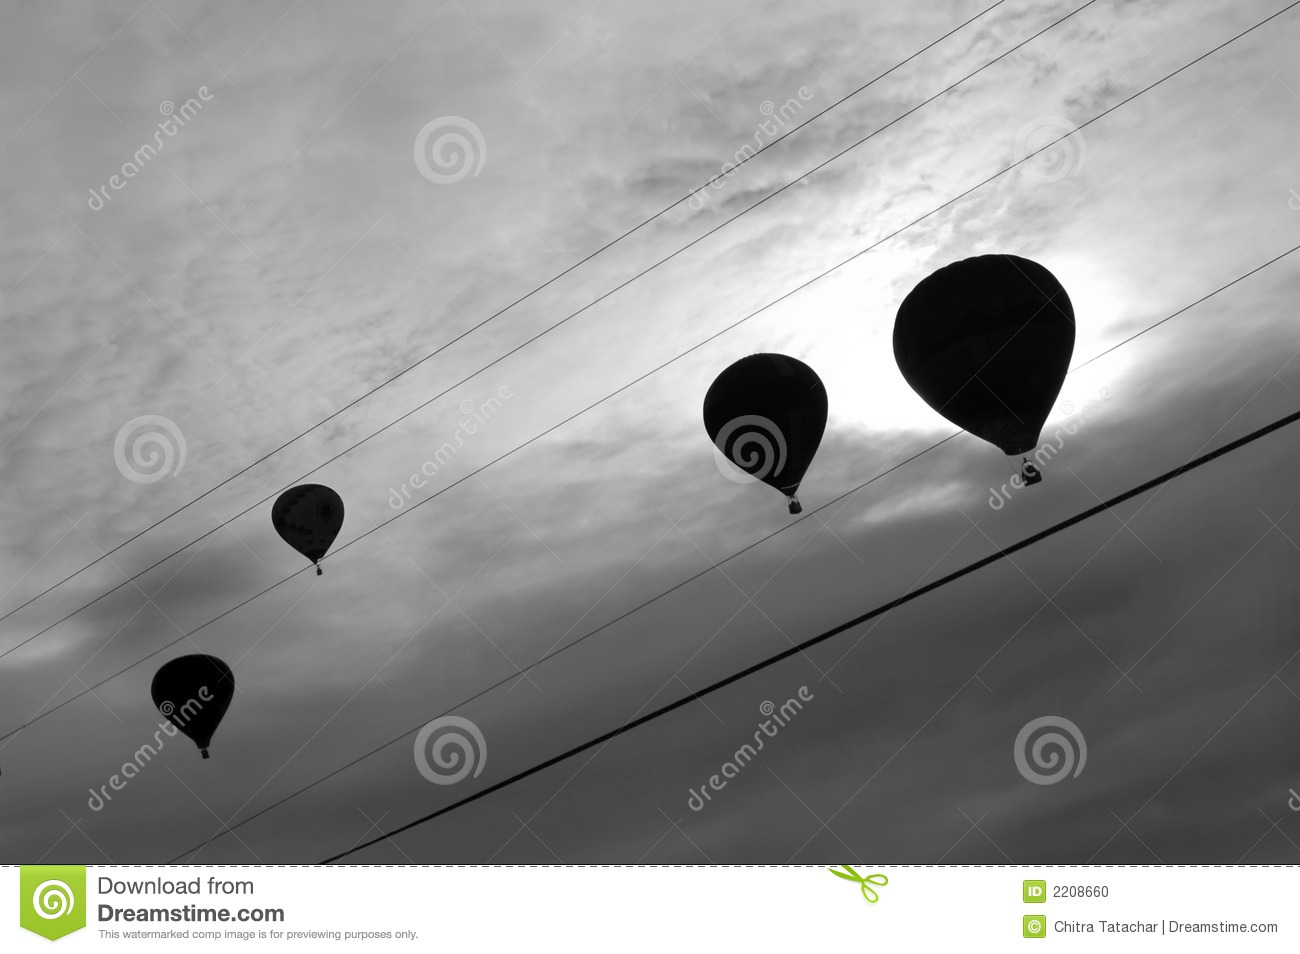 balloon song download